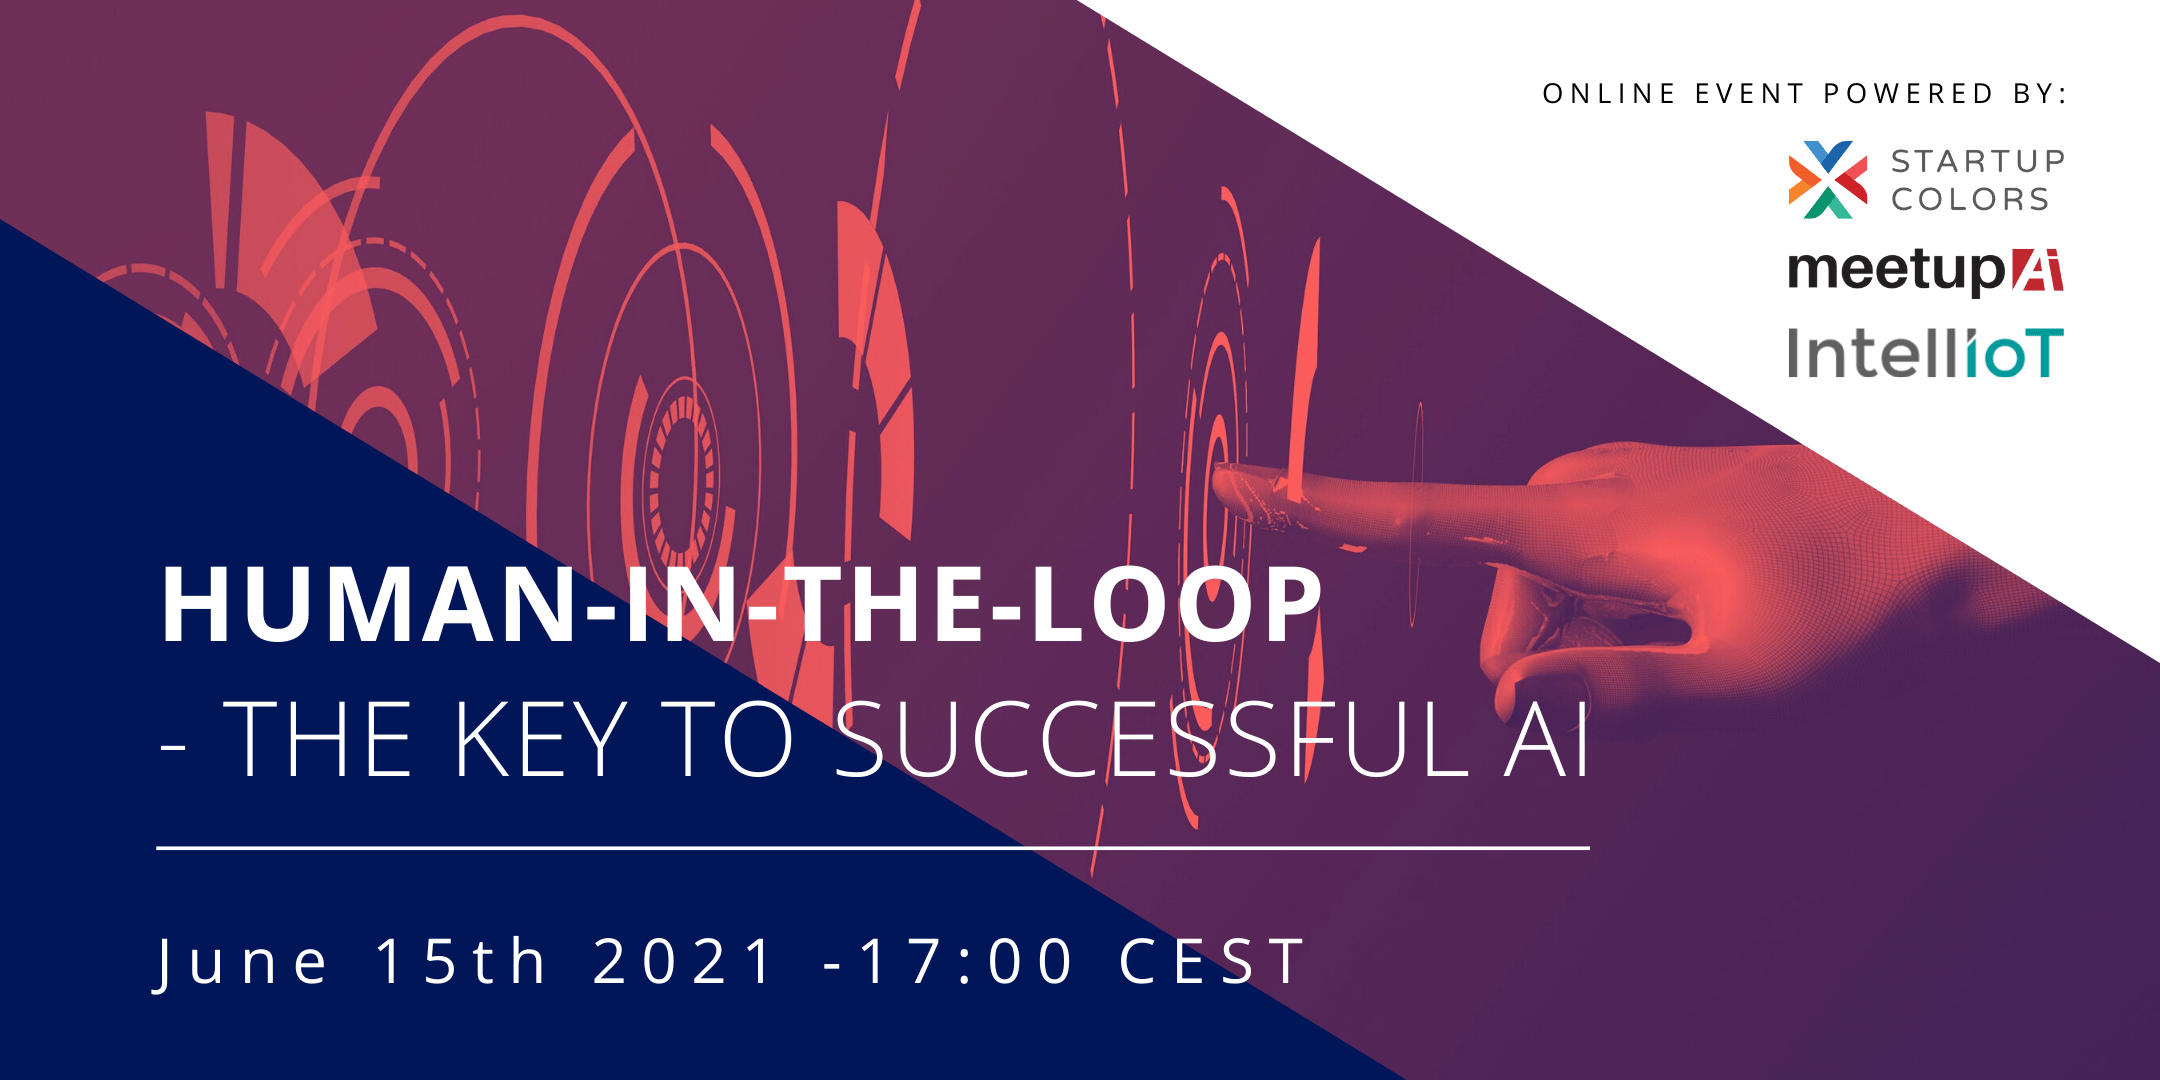 Human-in-the-Loop - the Key to Successful AI